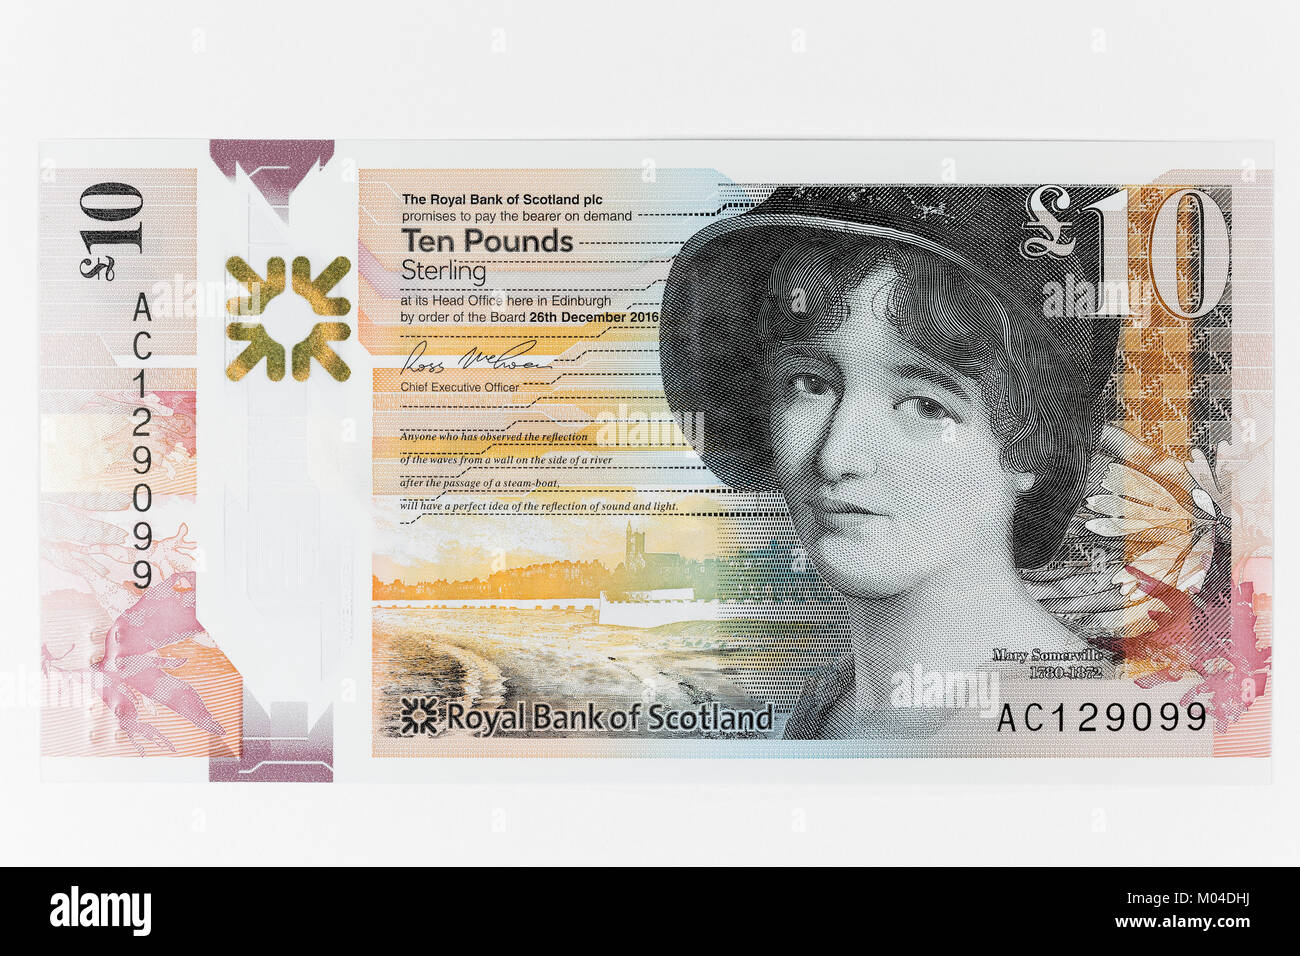 Scientist Mary Somerville became the first non royal female to feature on a Royal Bank of Scotland banknote since - Stock Image